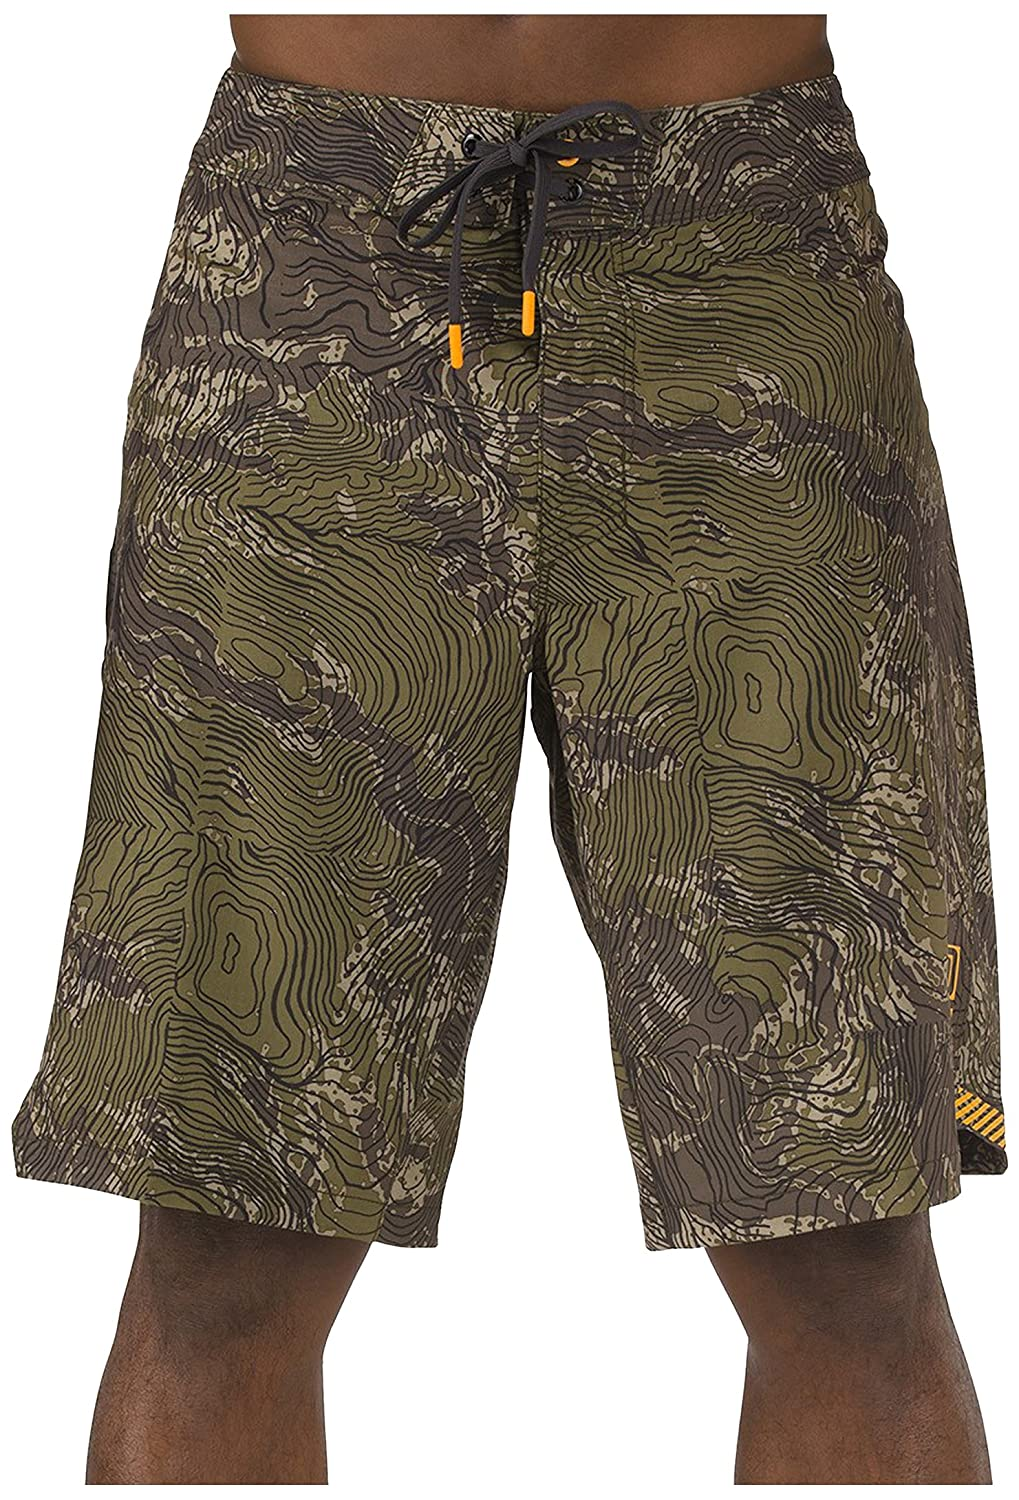 5.11 Recon Vandal Topo Short Battle Braun, Braun, 30